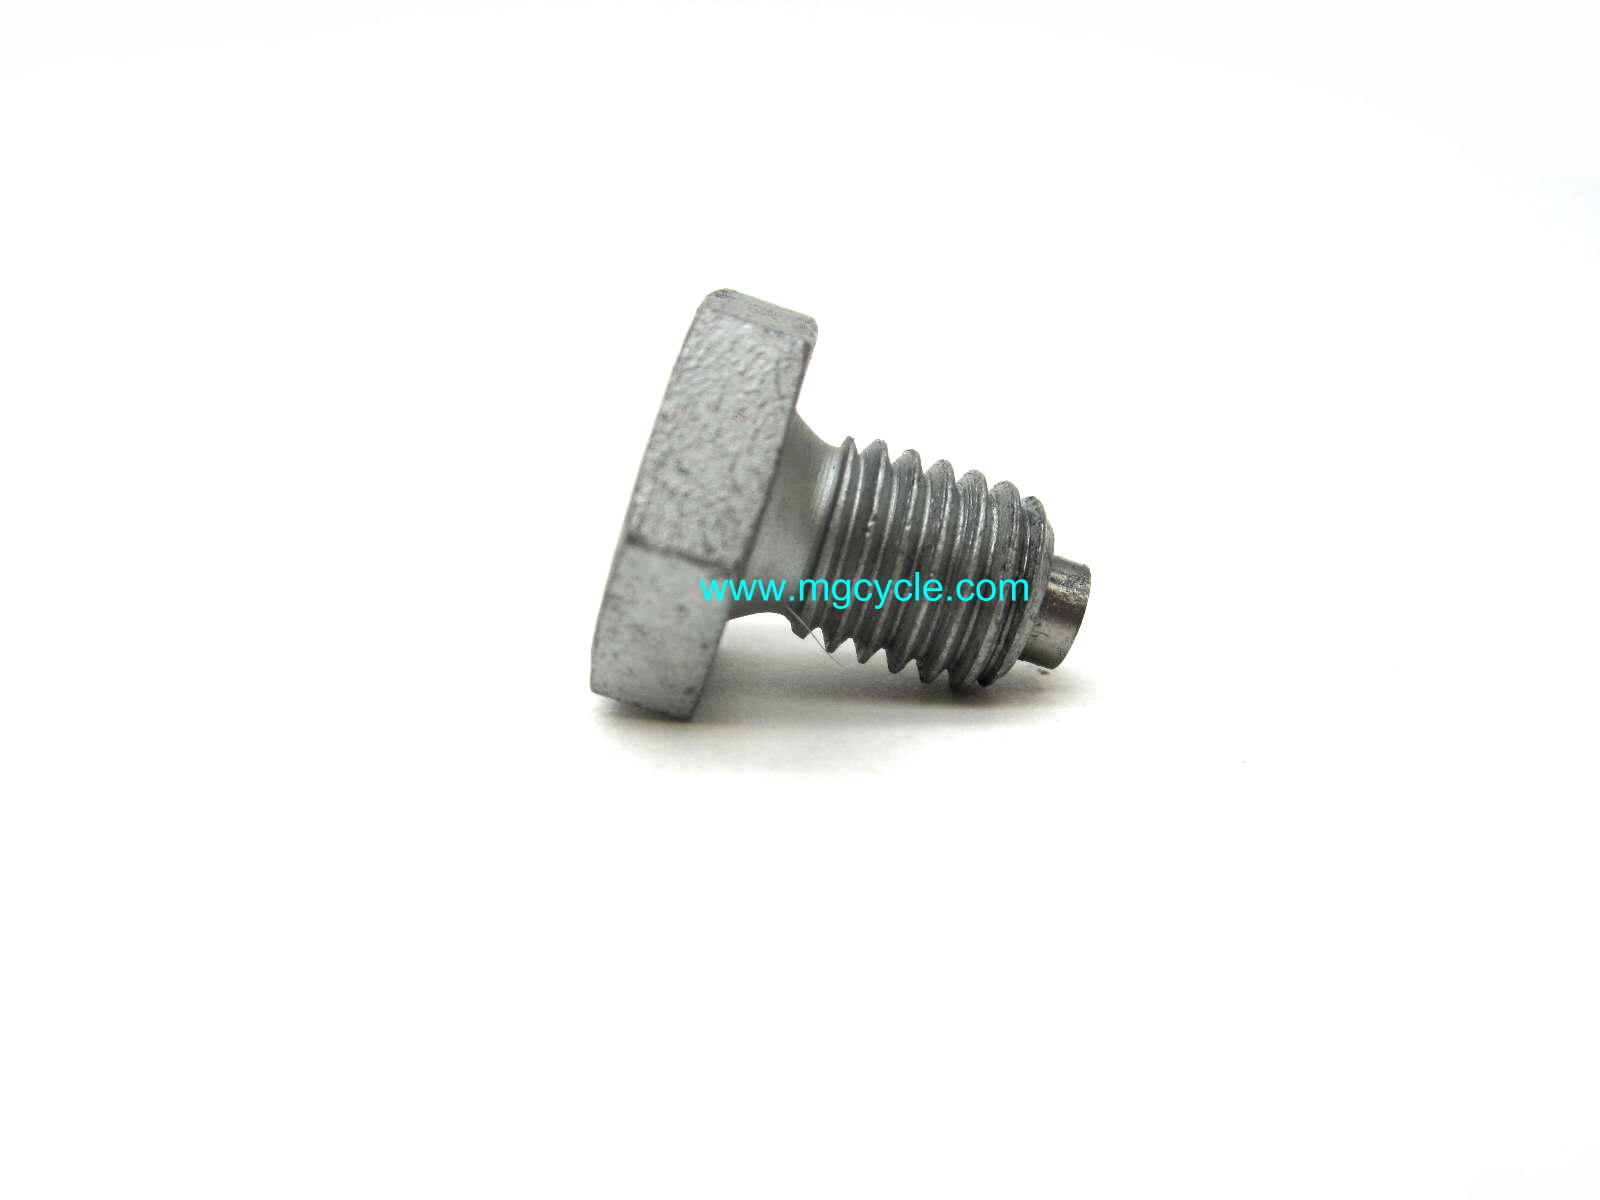 Magnetic drain plug 10mm engine, trans, rear drive GU31003766